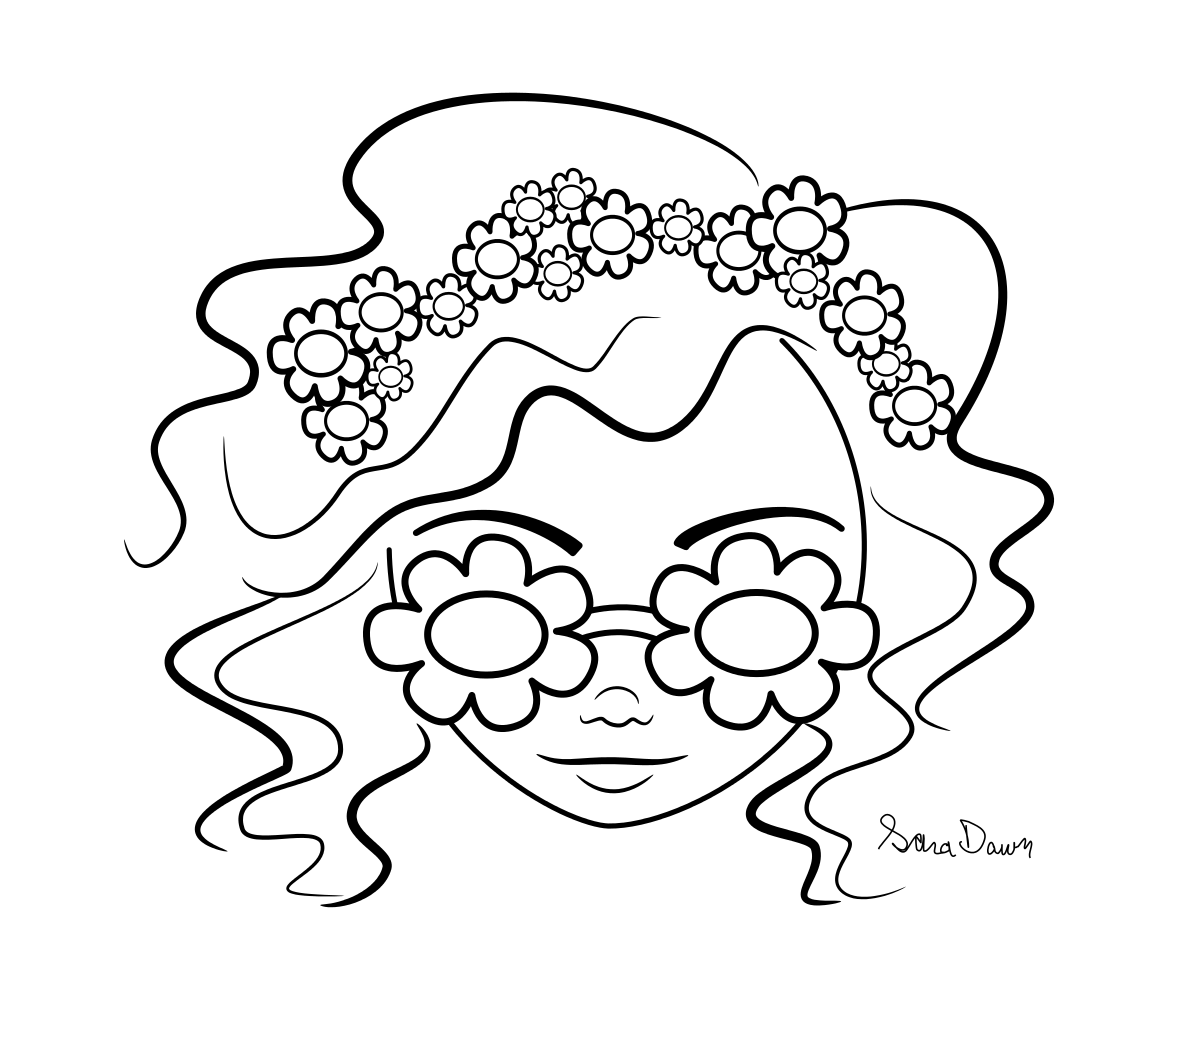 may flowers coloring page images pictures becuo